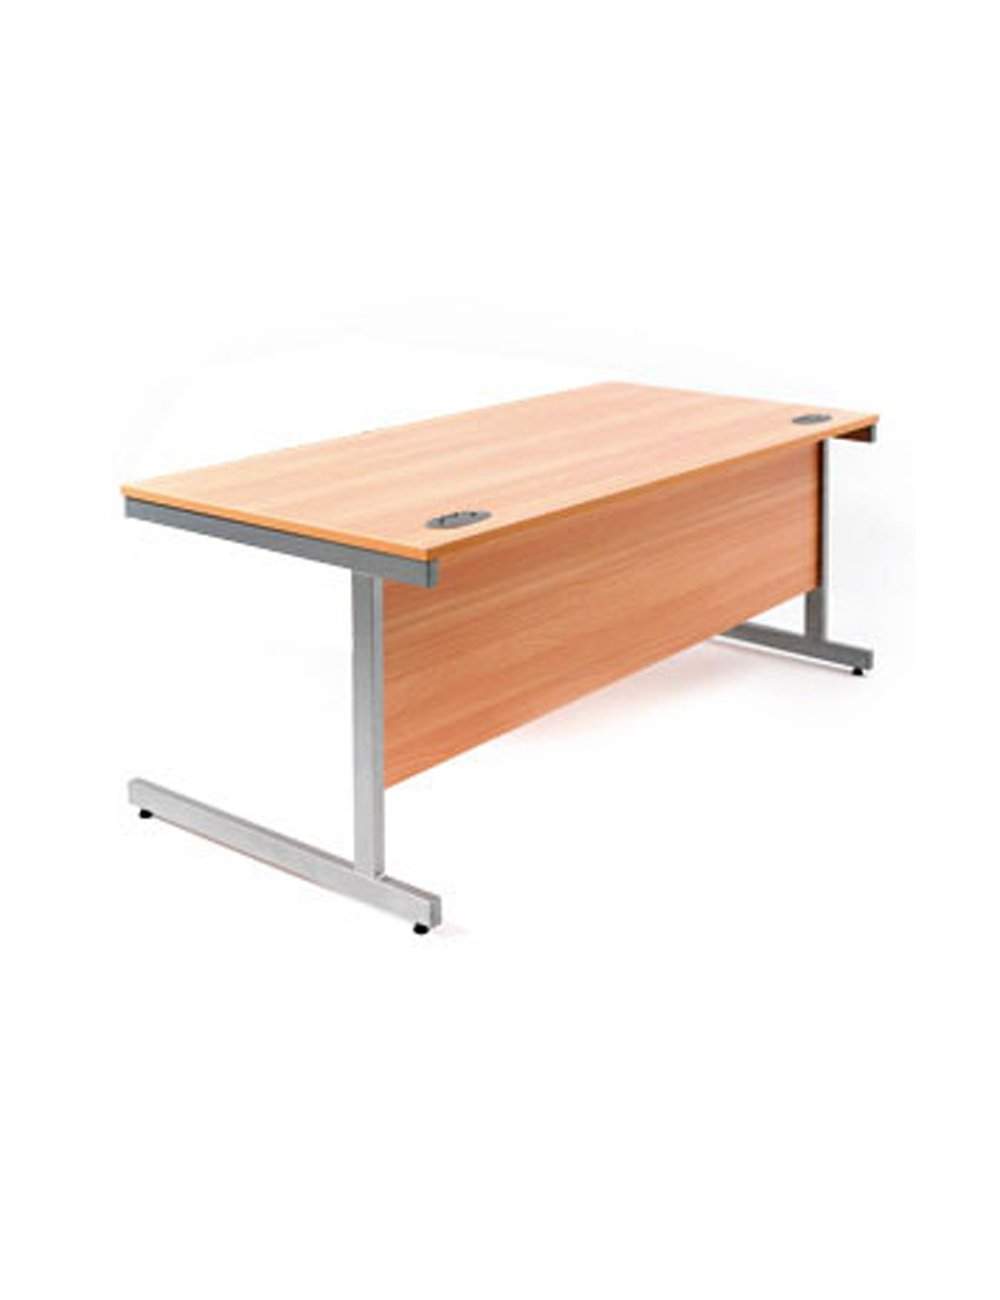 General-Workstation-Cantilever-Desk